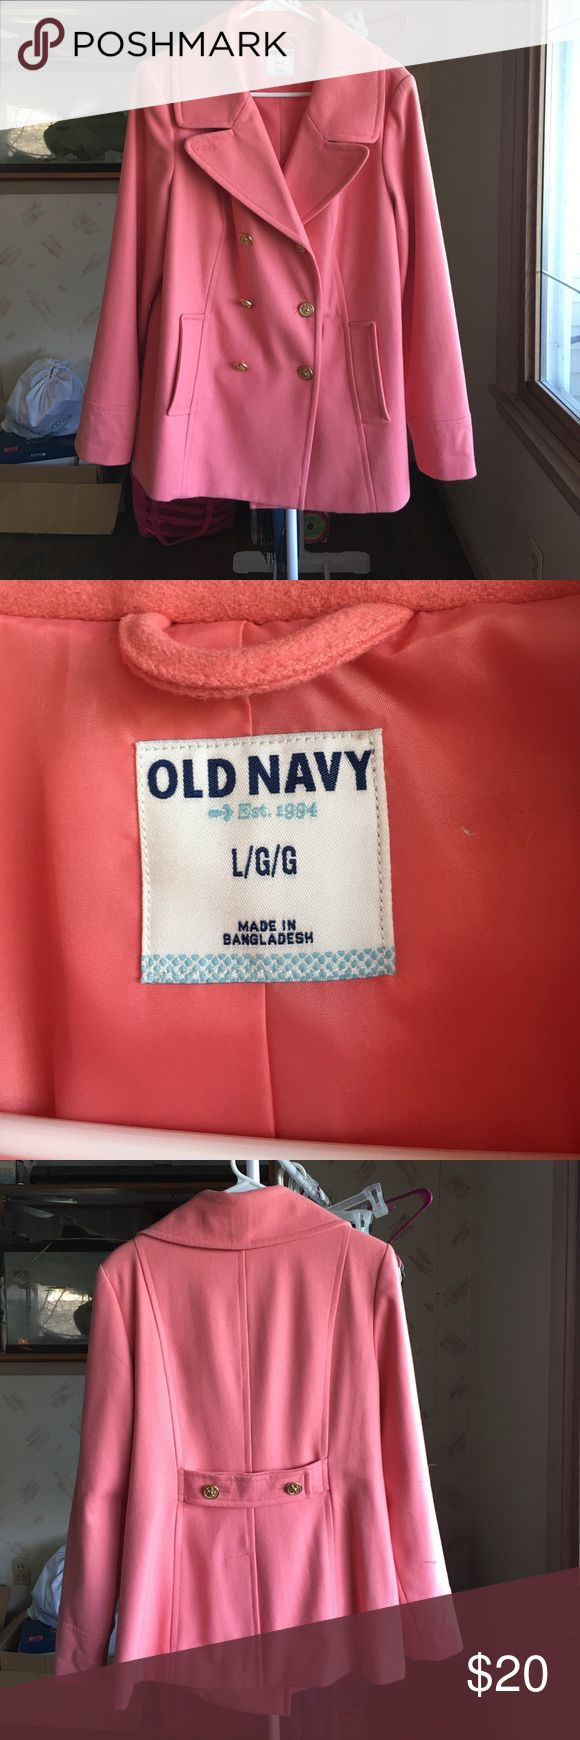 Old Navy Pea Coat NWOT never worn pink Old Navy pea coat. Gold buttons that are all attached.  Slit pockets in front with an inside button. Excellent condition. Old Navy Jackets & Coats Pea Coats